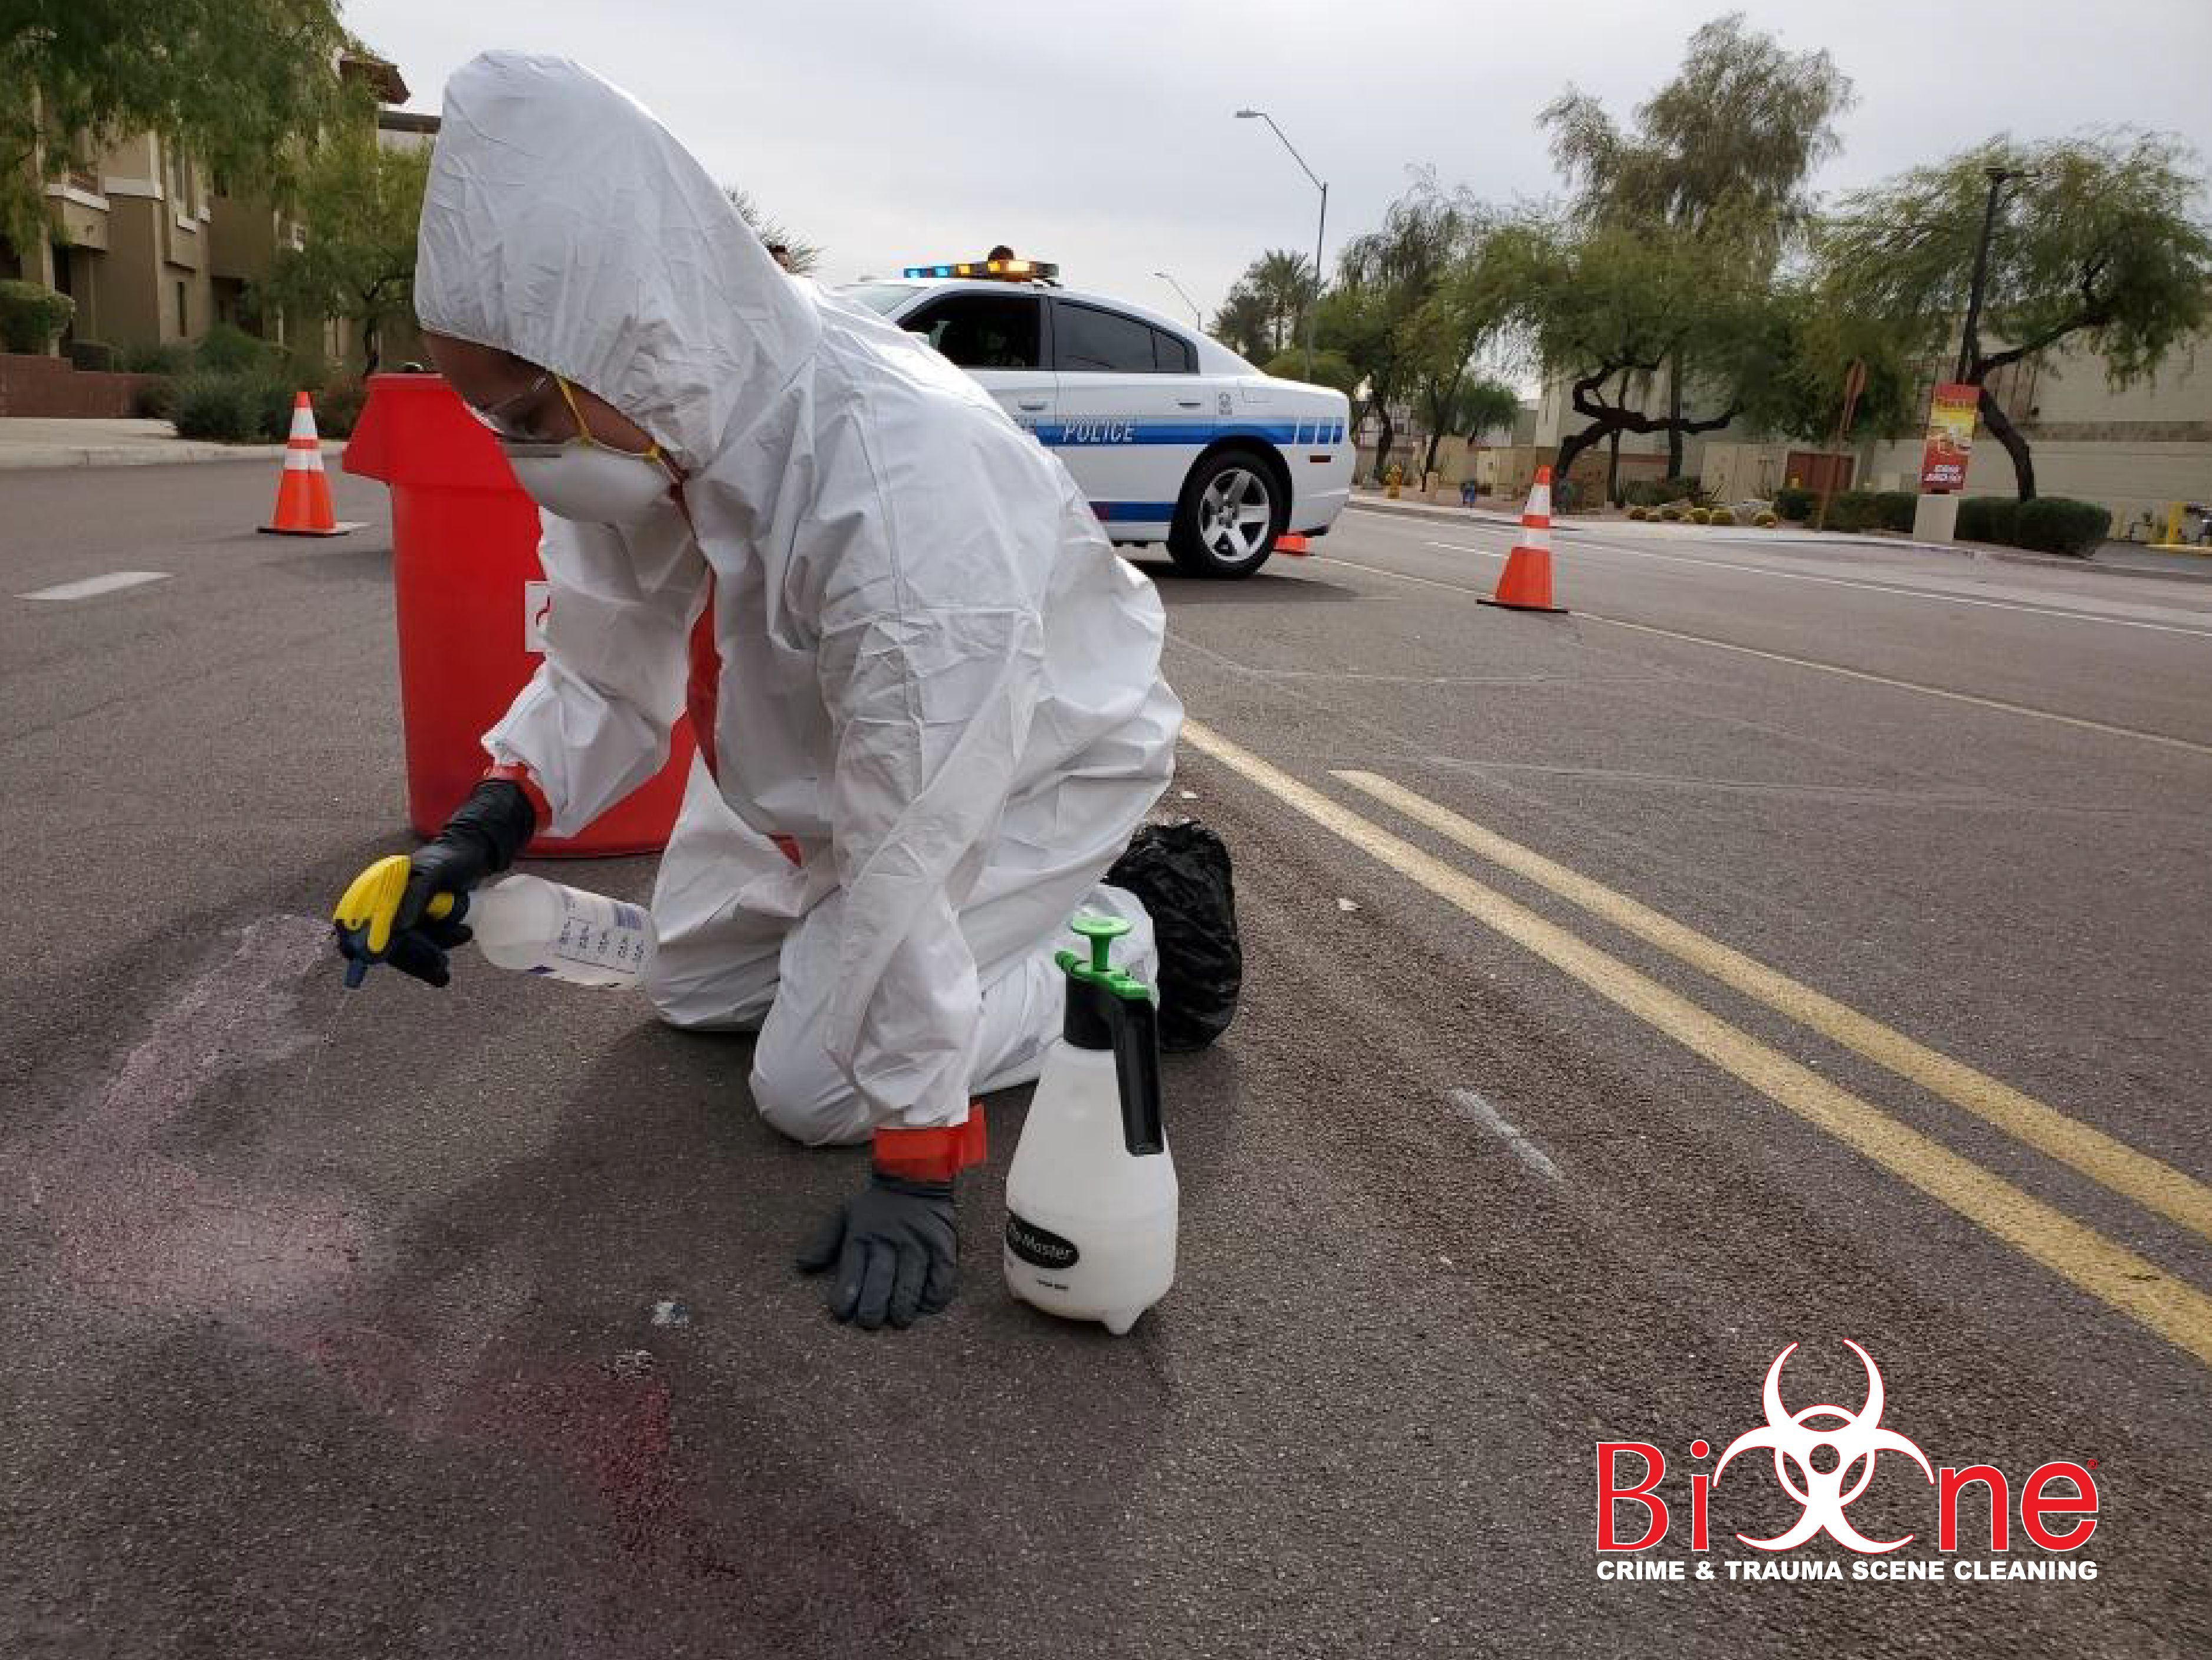 Bio-One works along with local law enforcement to assist victims of traumatic events.